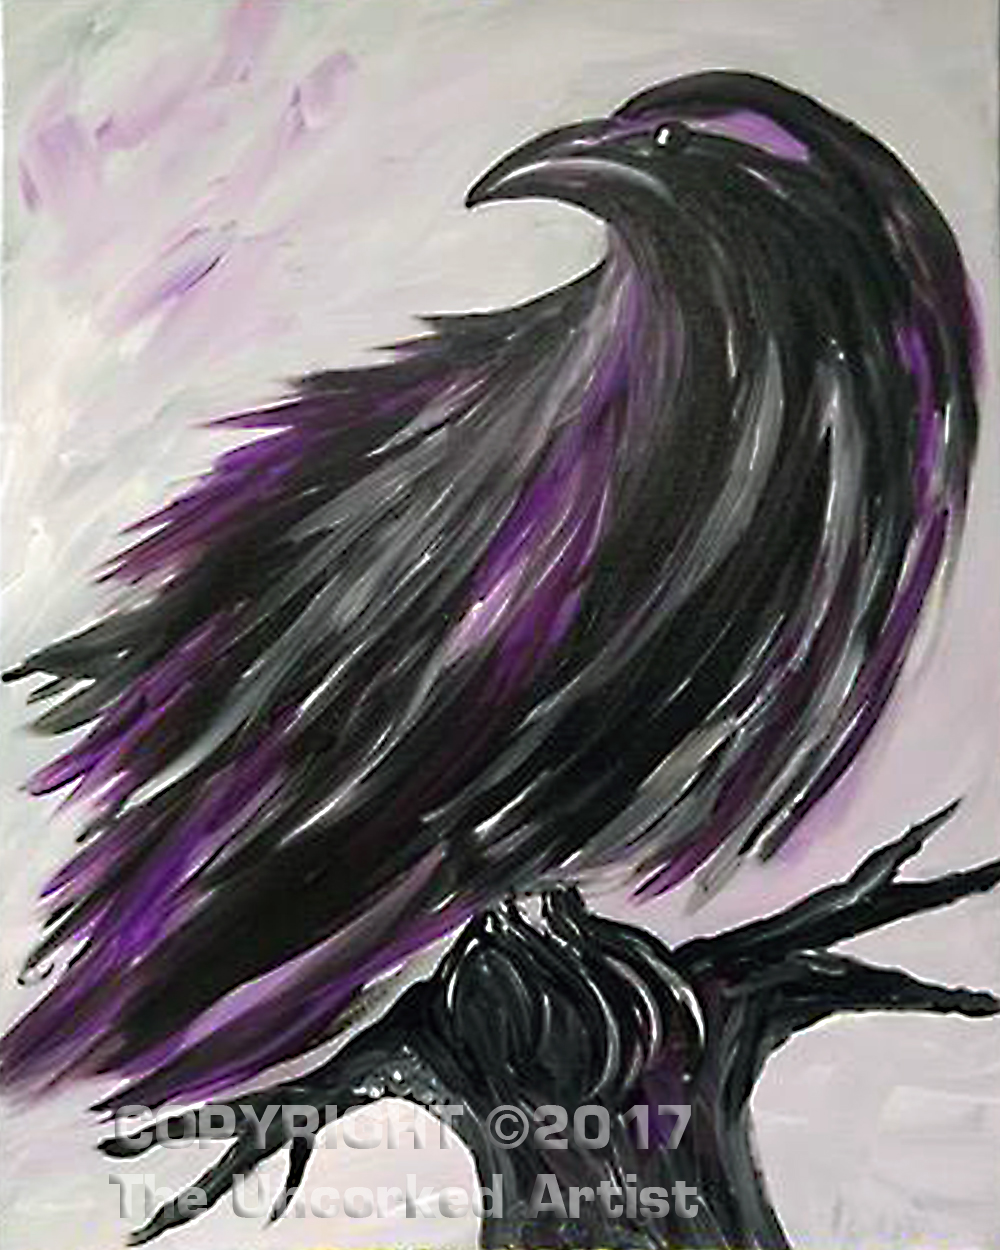 The Raven (#438) • Created by Mandy • 16×20 • Tier 3